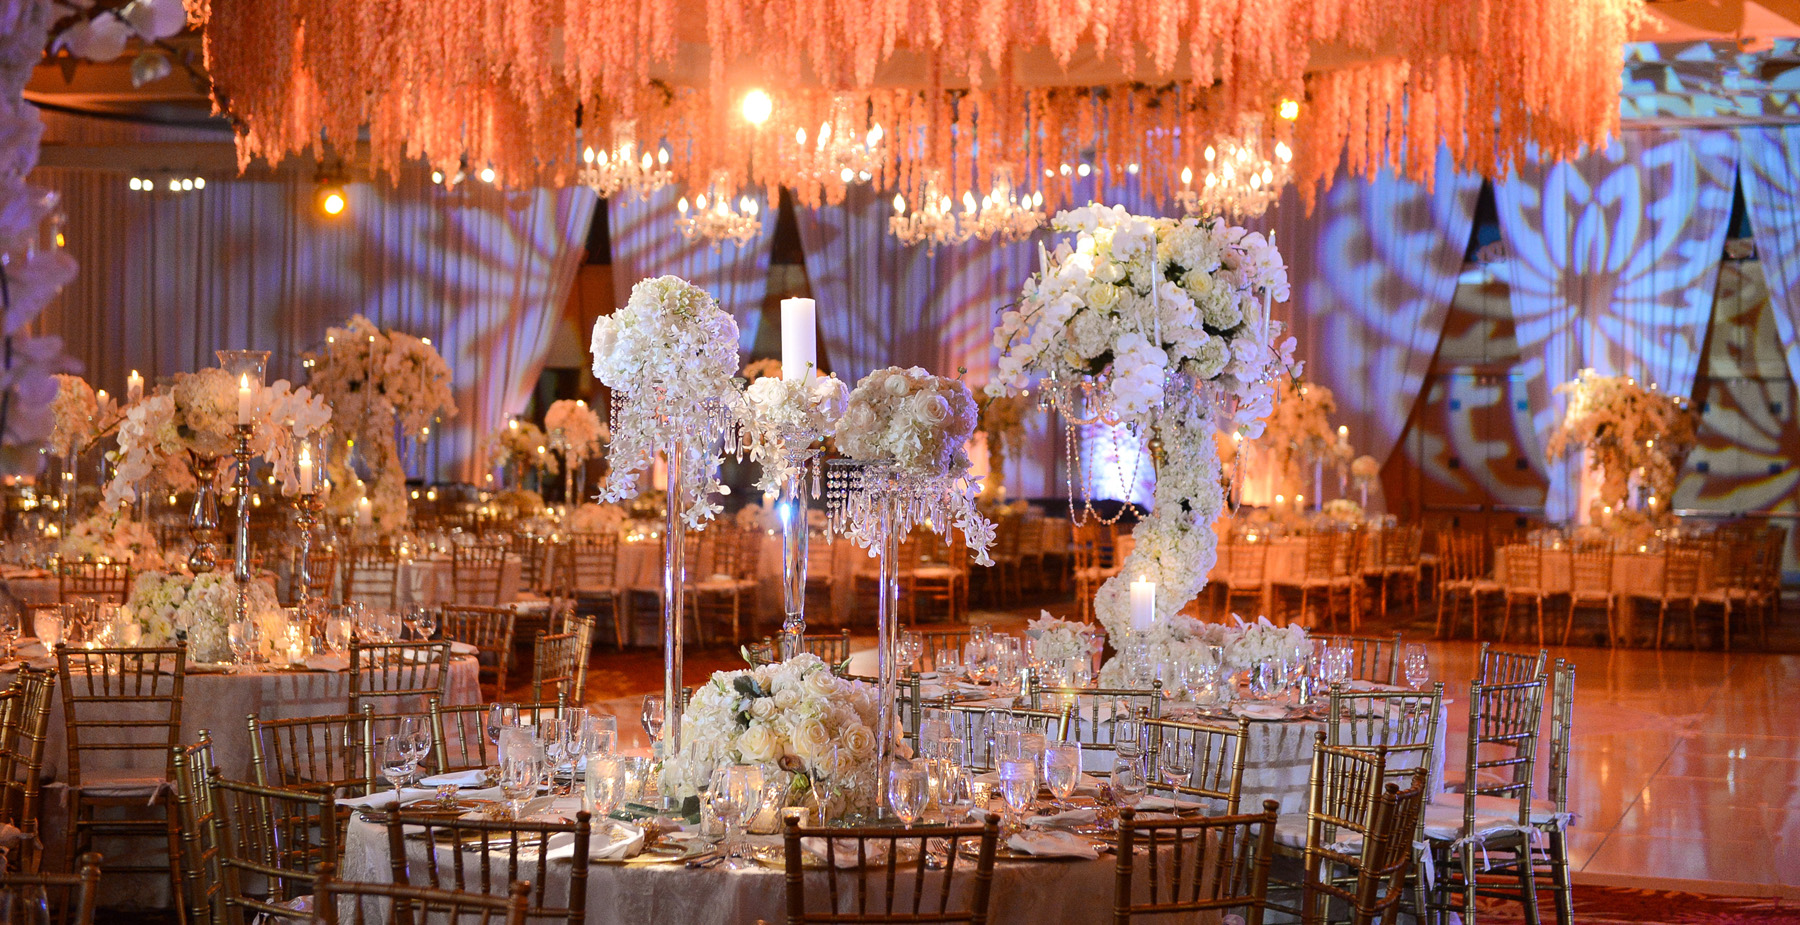 Luxury boutique wedding décor